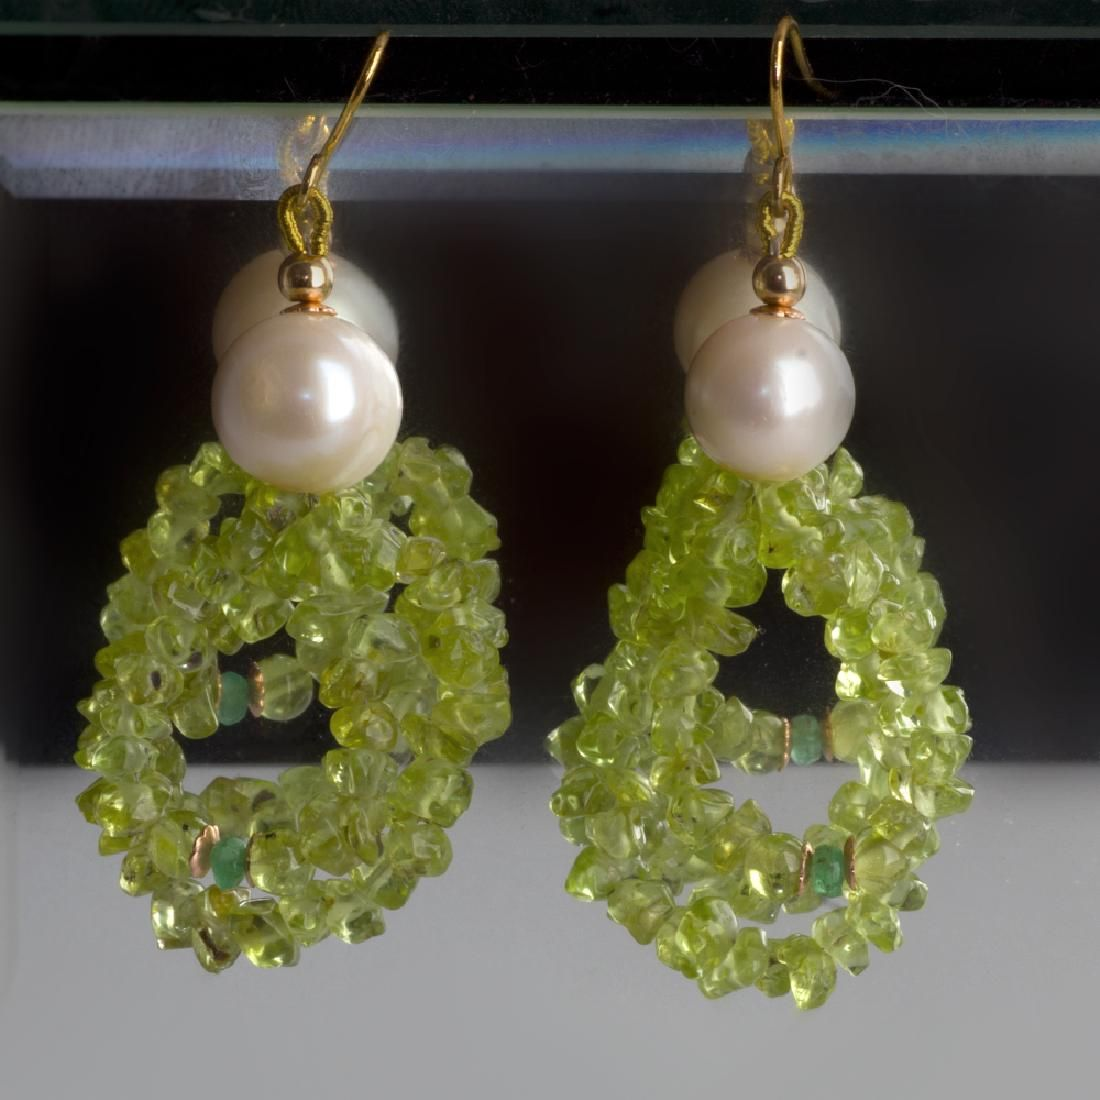 Peridot and Colombian Emeralds 0.22 carat total weight